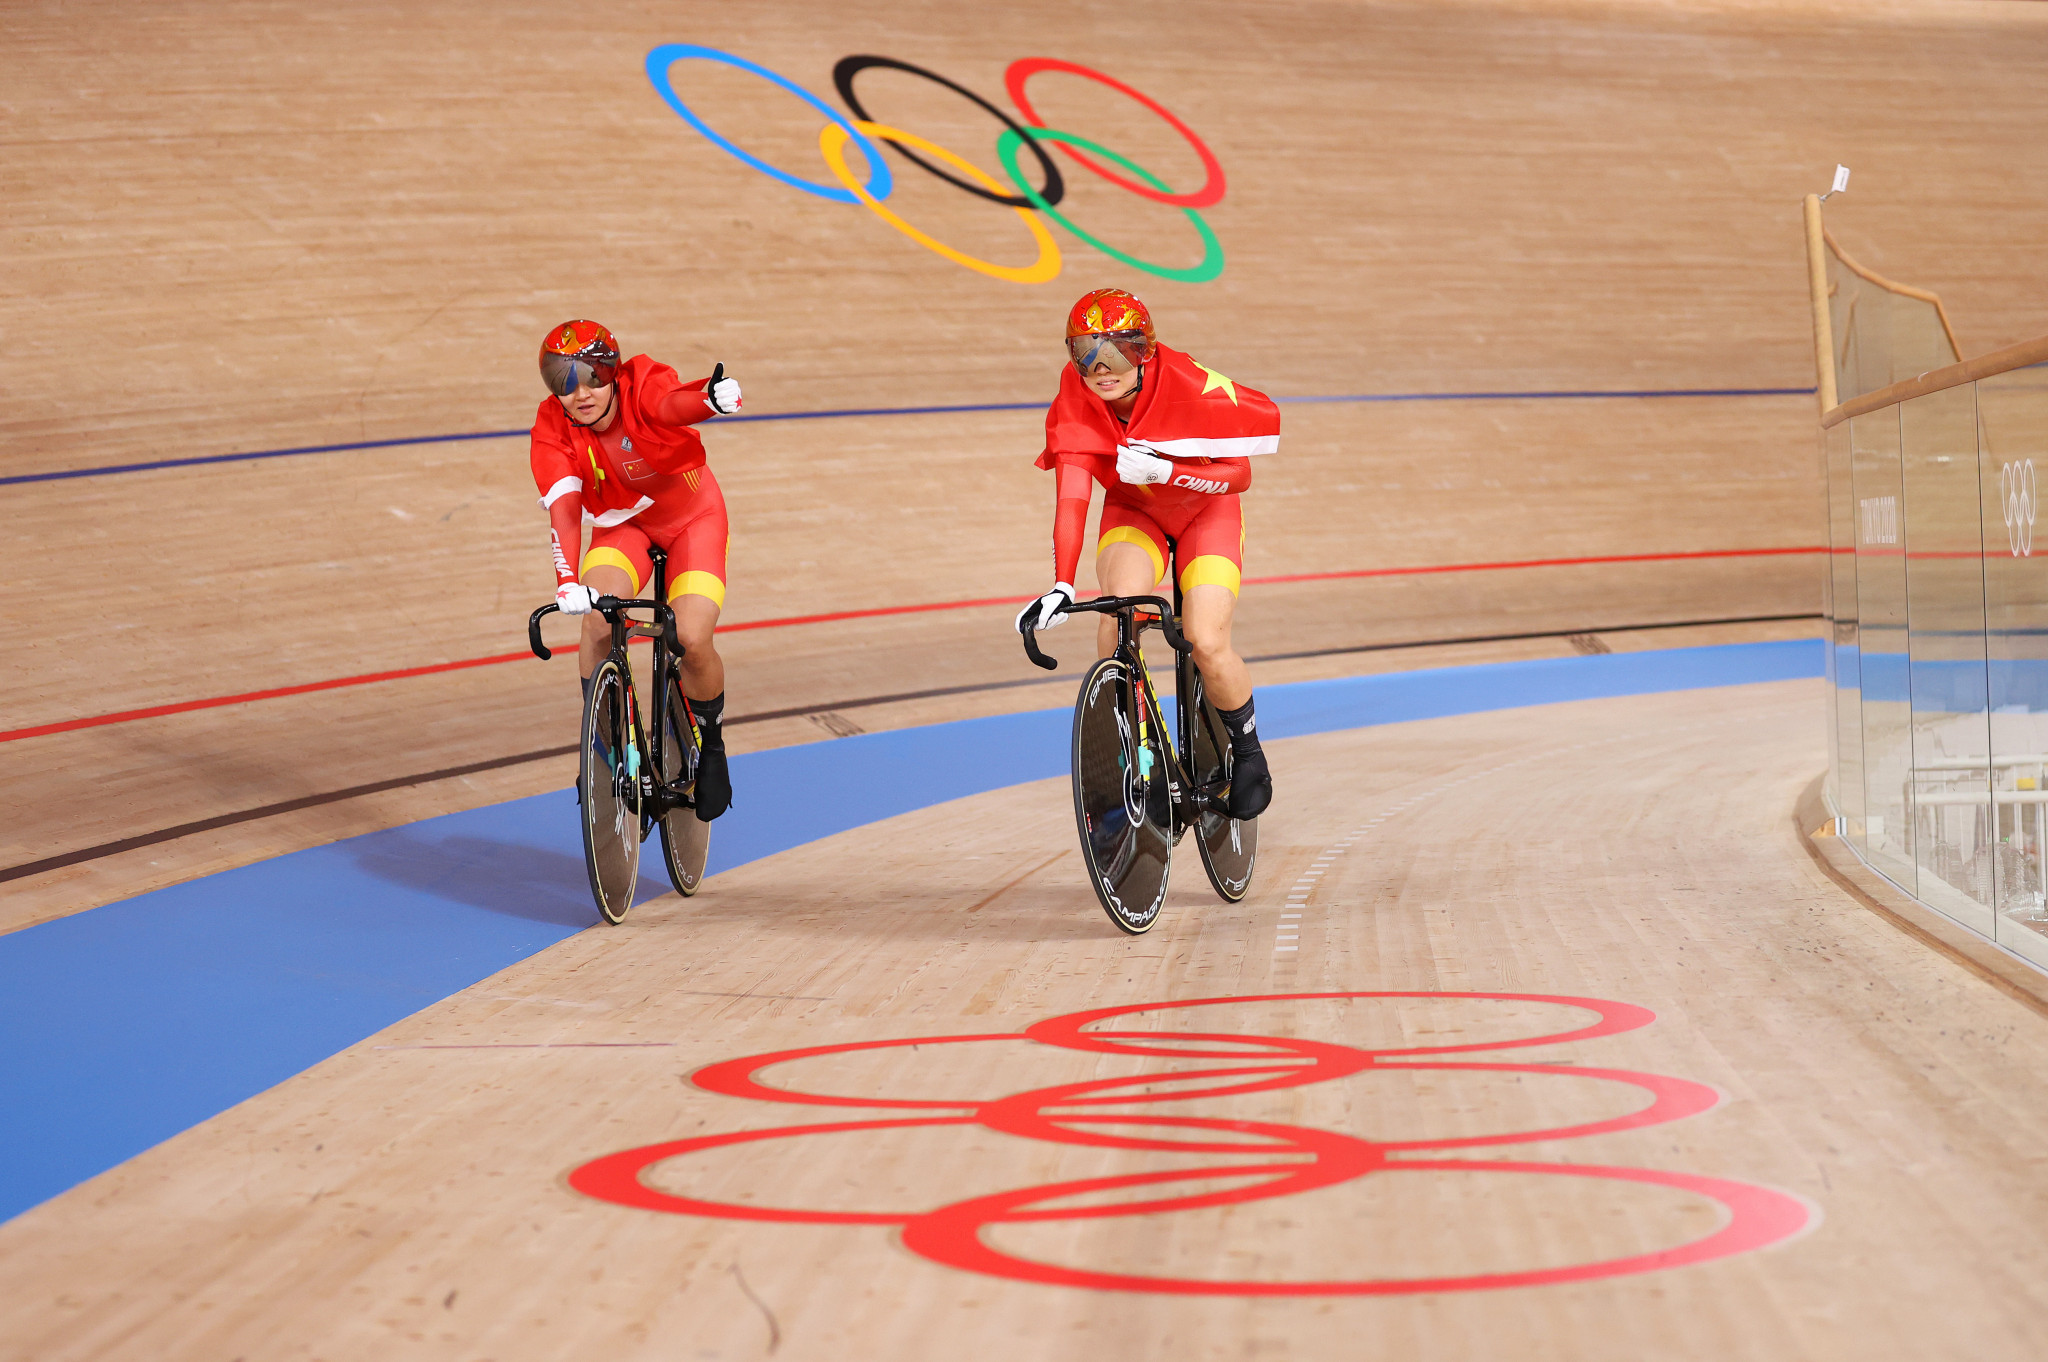 Track cycling began today and Bao Shanju and Zhong Tianshi won the first gold medal, in the women's team sprint, for China  ©Getty Images